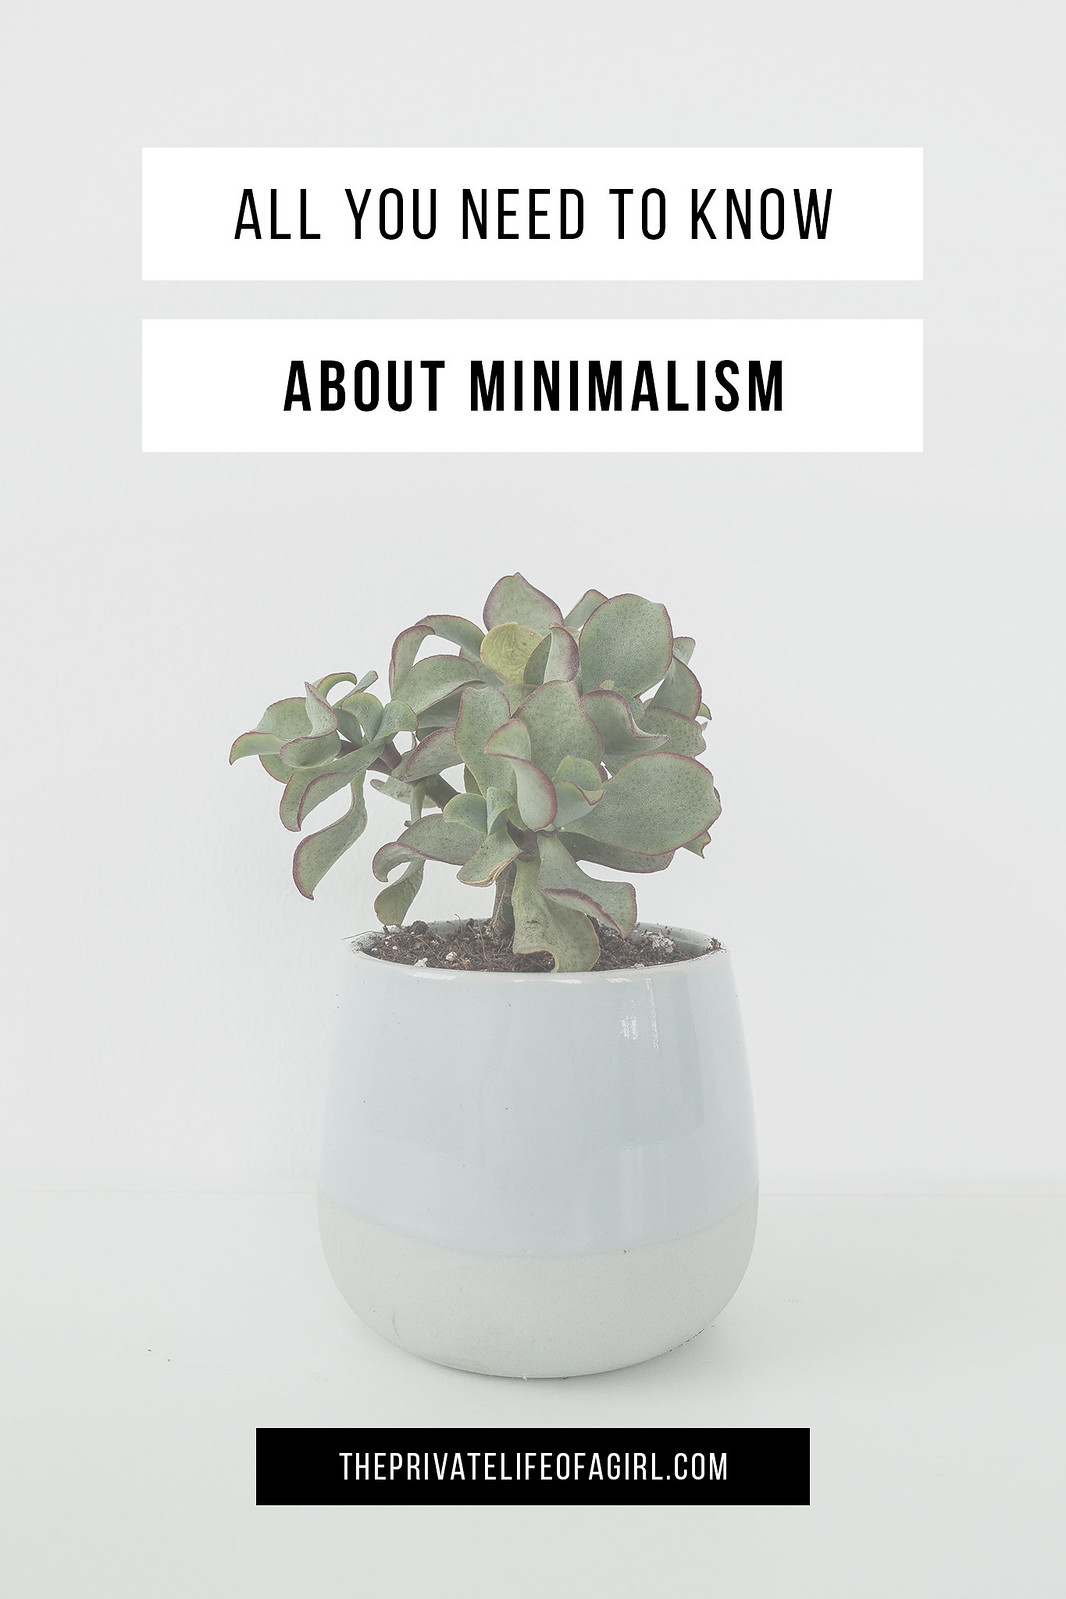 Minimalism: Questions & Answers